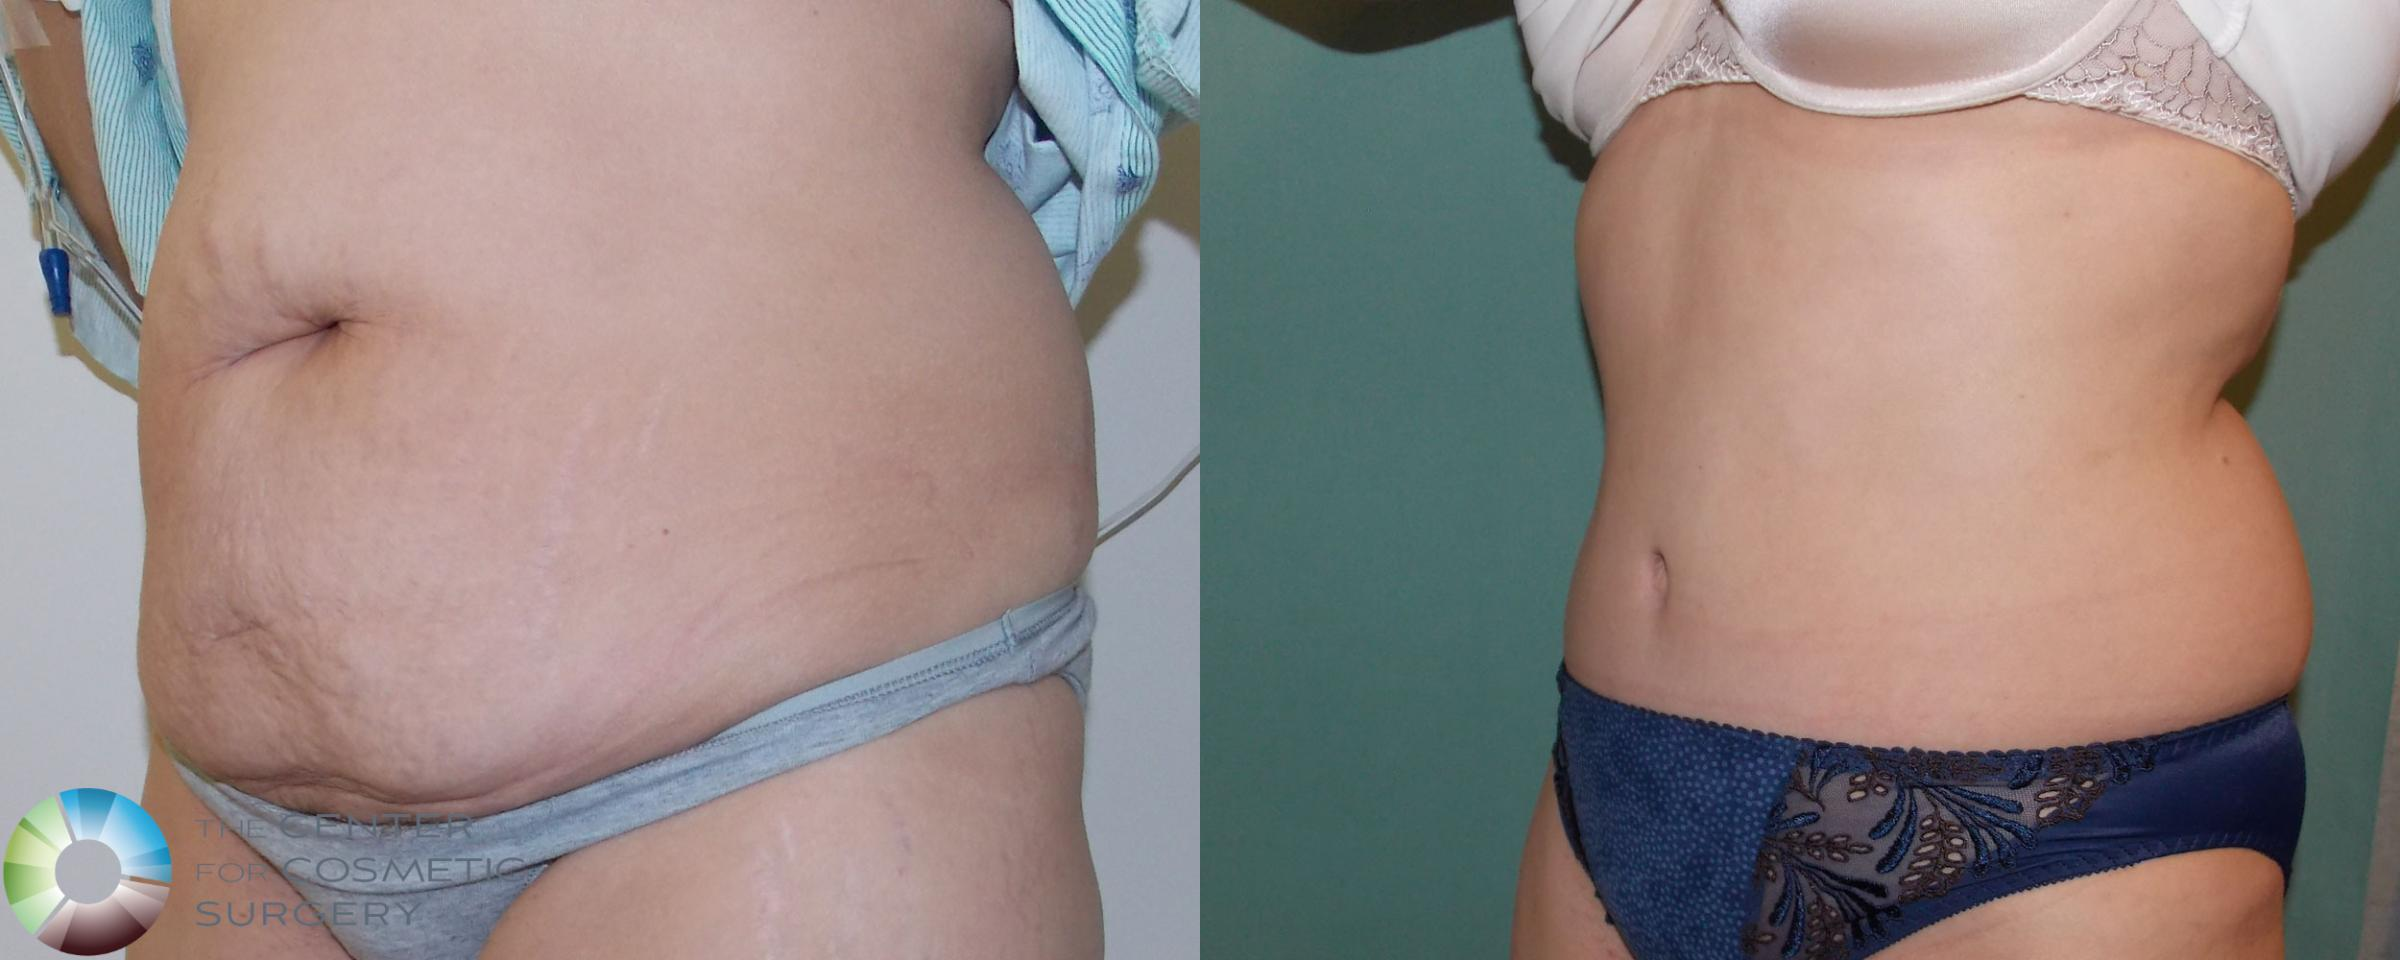 Tummy Tuck Case 685 Before & After View #2 | Golden, CO | The Center for Cosmetic Surgery